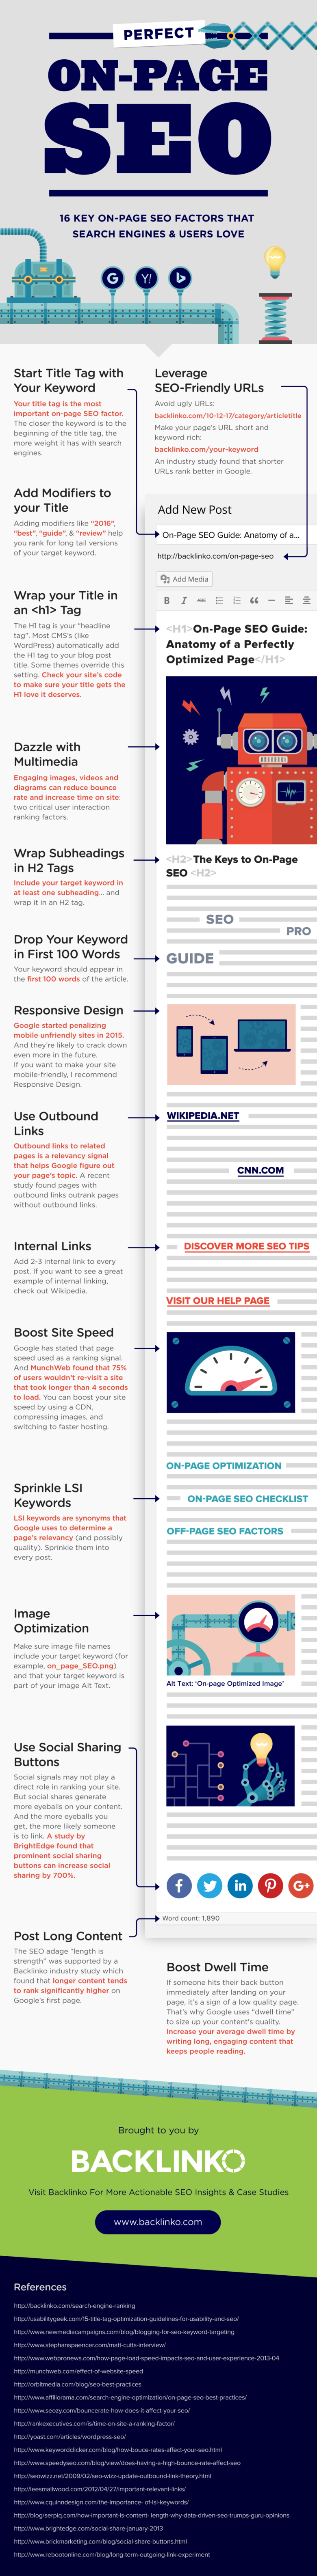 infographie-on-page-seo